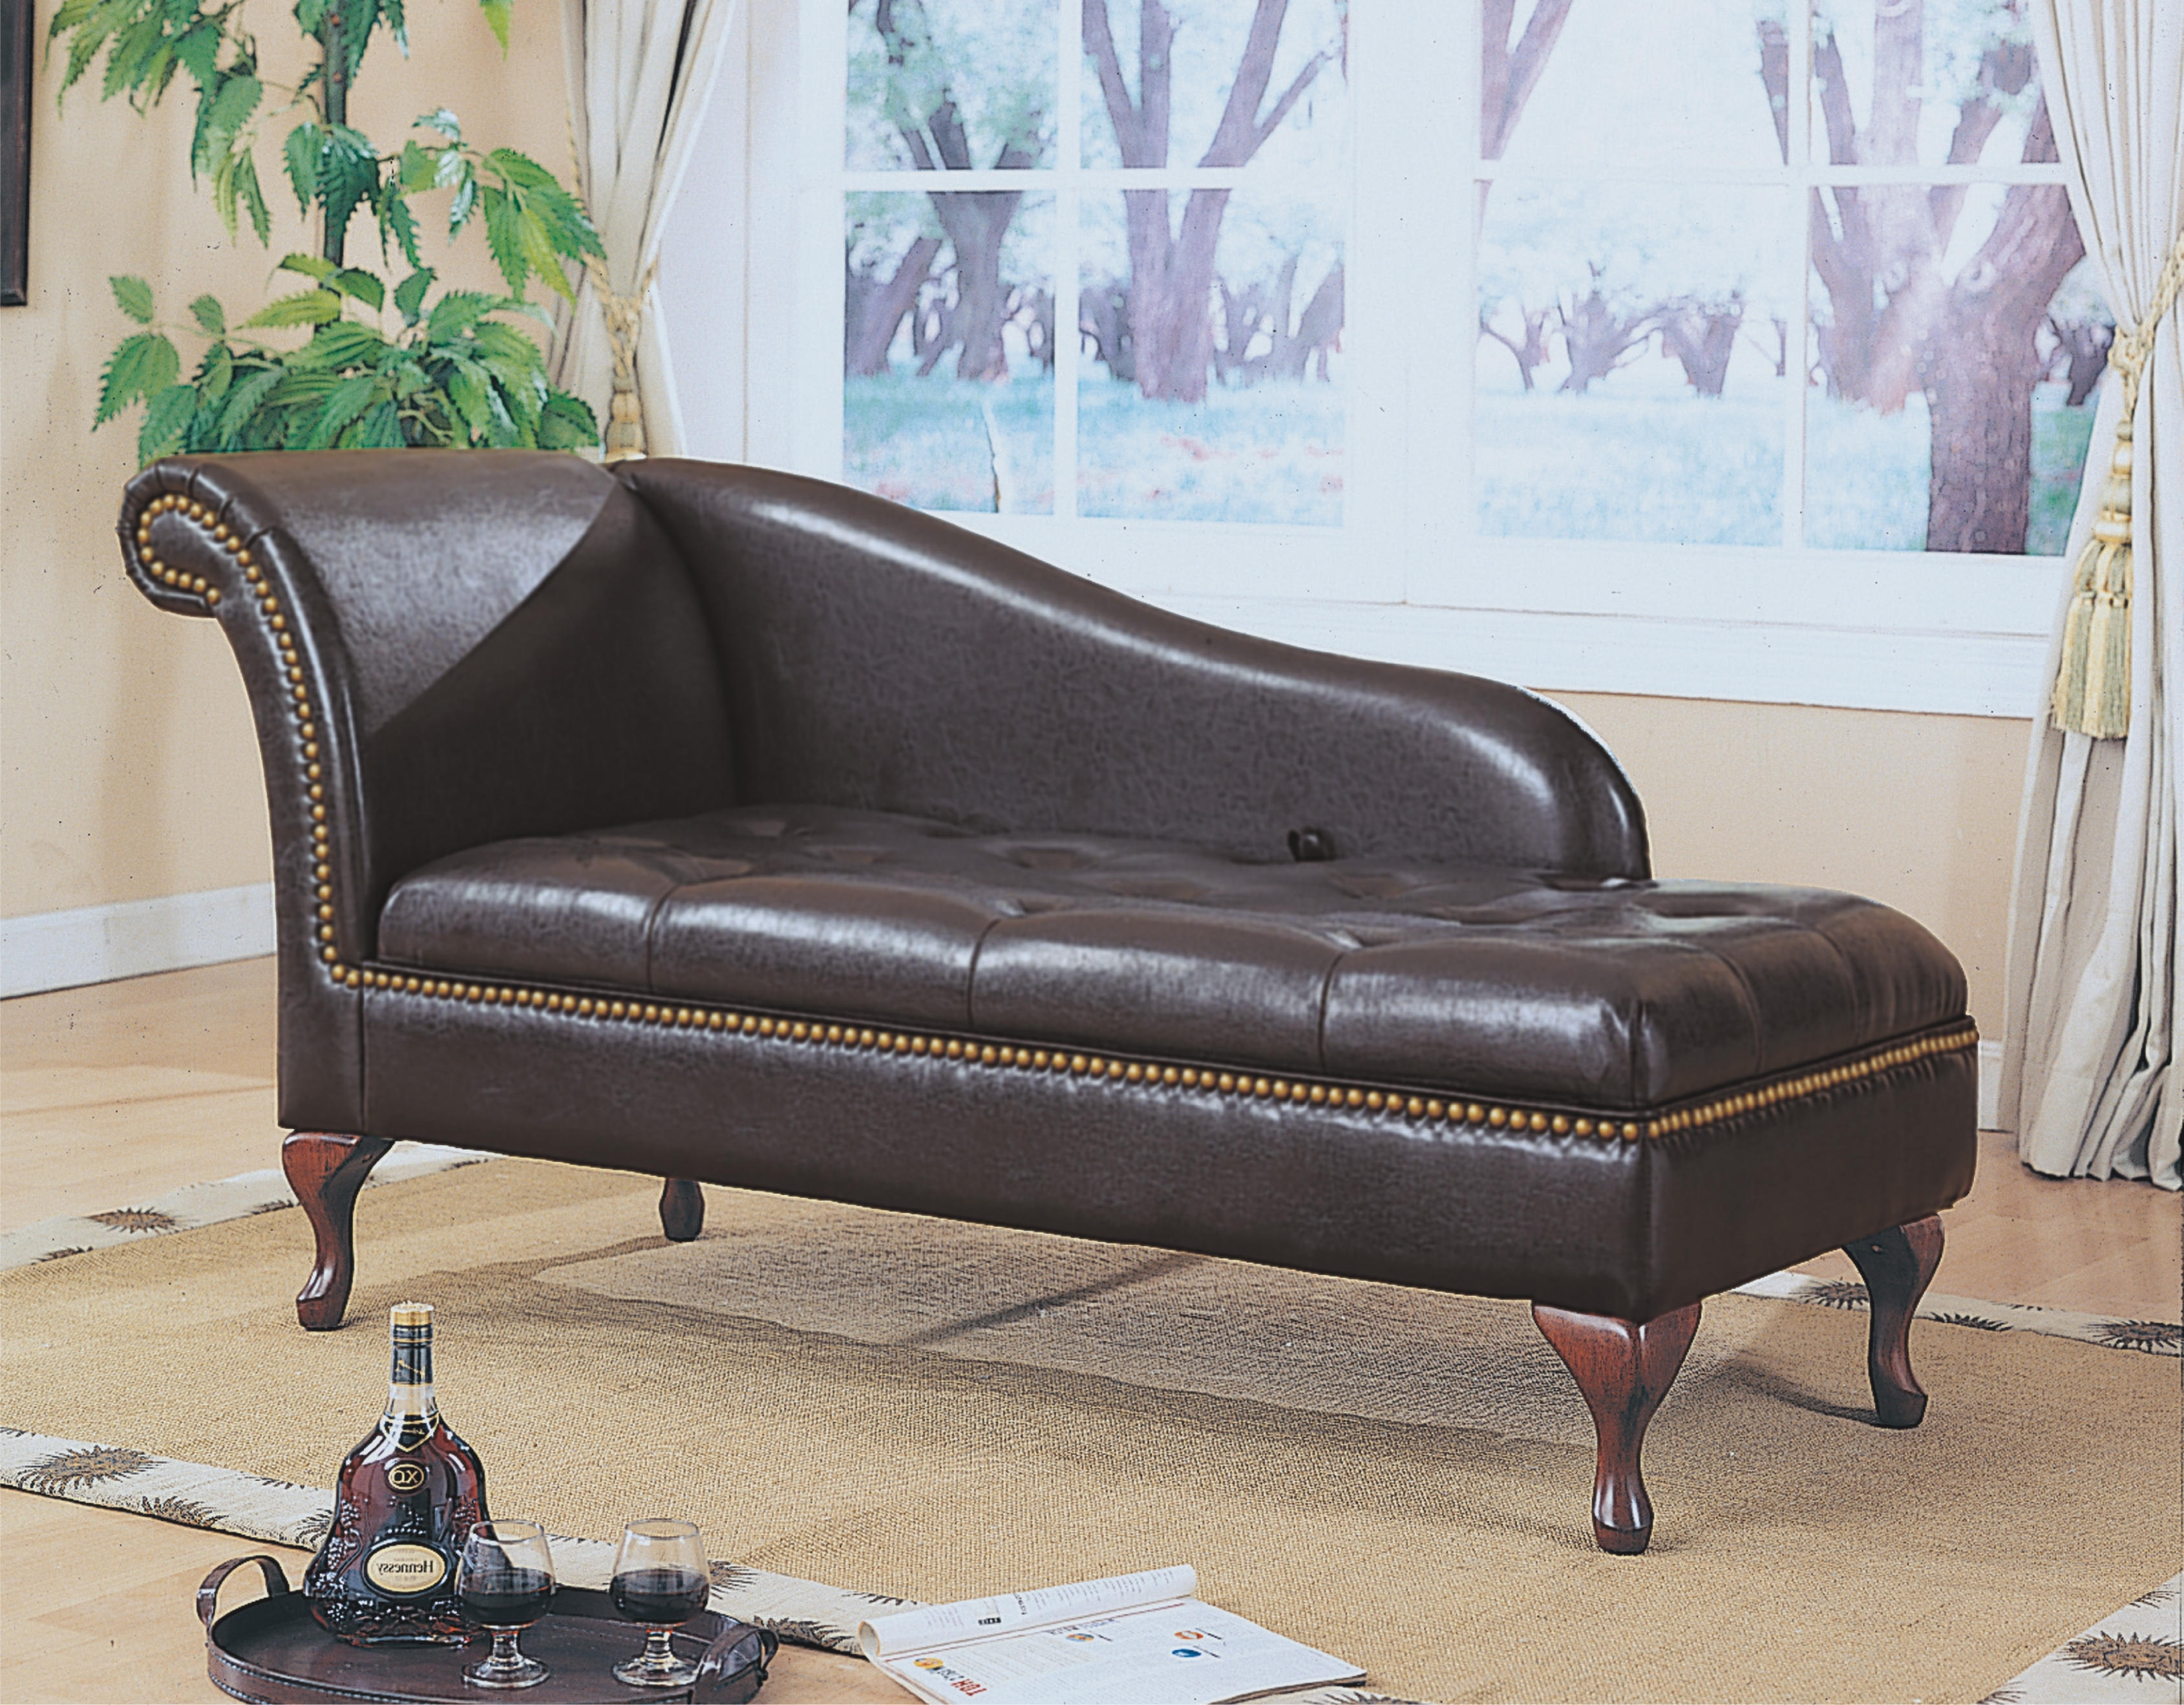 2018 Dark Brown Leather Sofa Chaise Lounge With Curving Headboard And Intended For Black Leather Chaise Lounges (View 15 of 15)